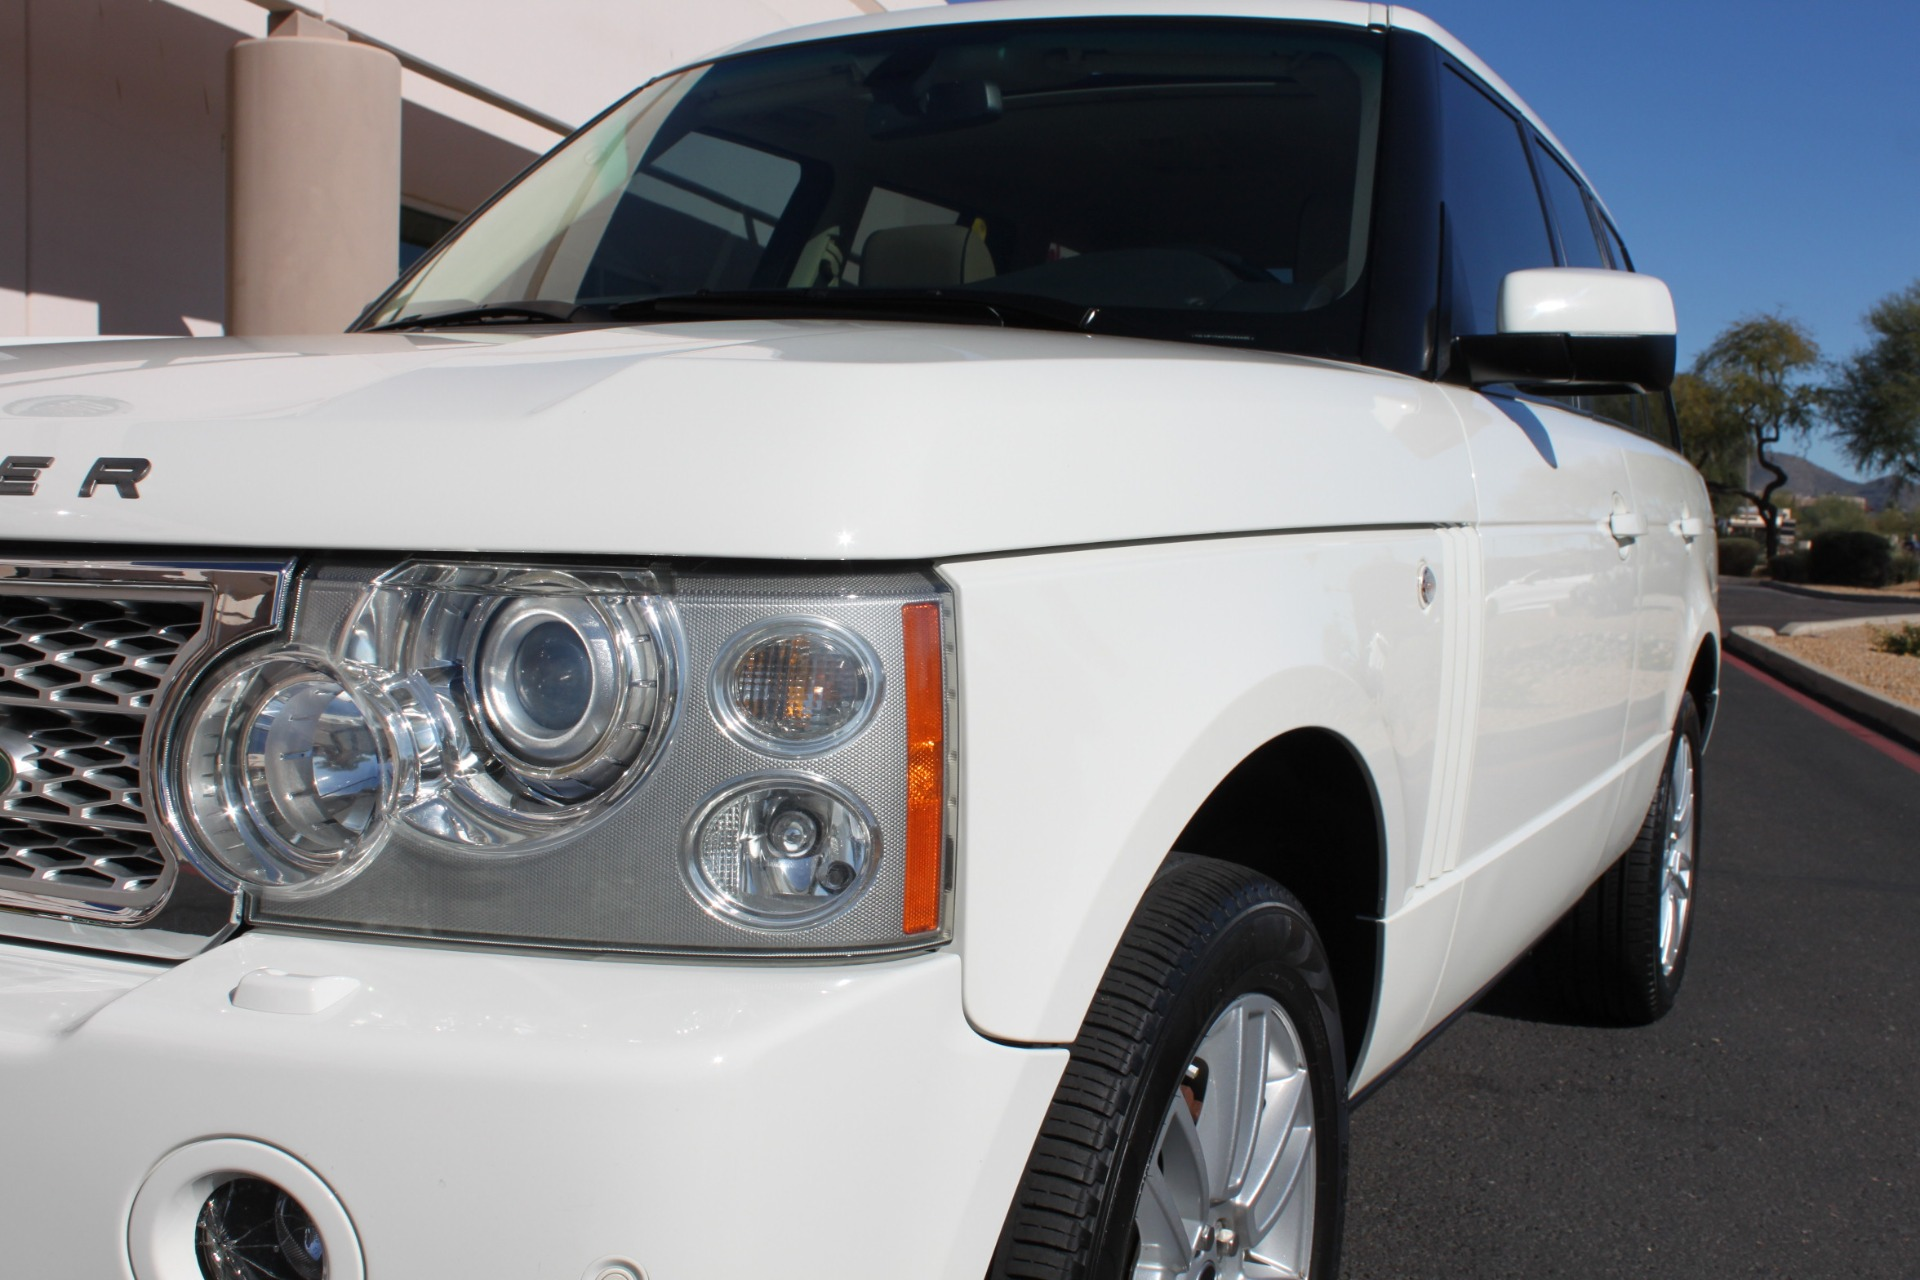 Used-2007-Land-Rover-Range-Rover-HSE-Audi